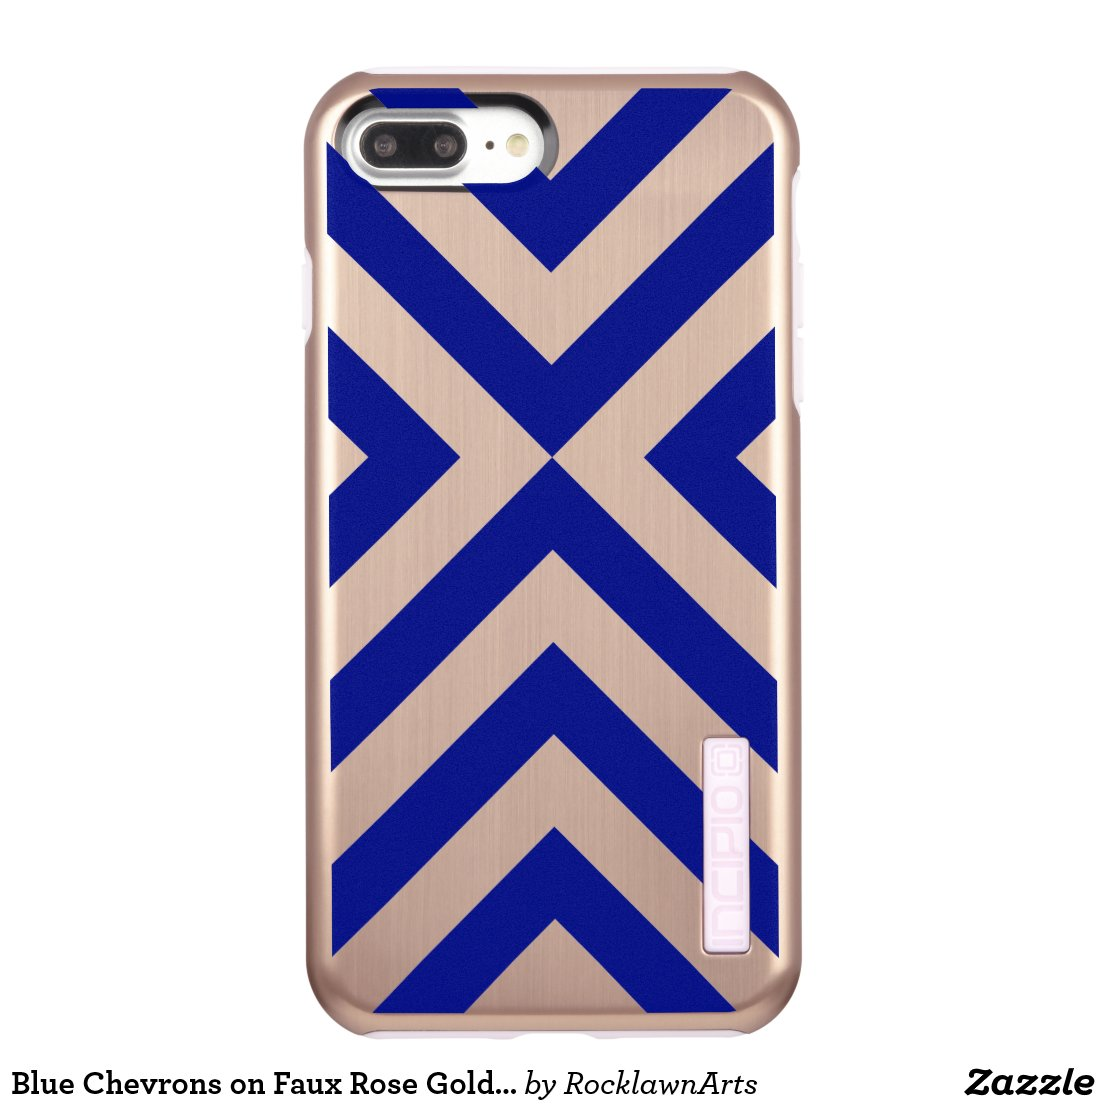 Blue Chevrons on Faux Rose Gold Finish Incipio DualPro Shine iPhone 7 Plus Case